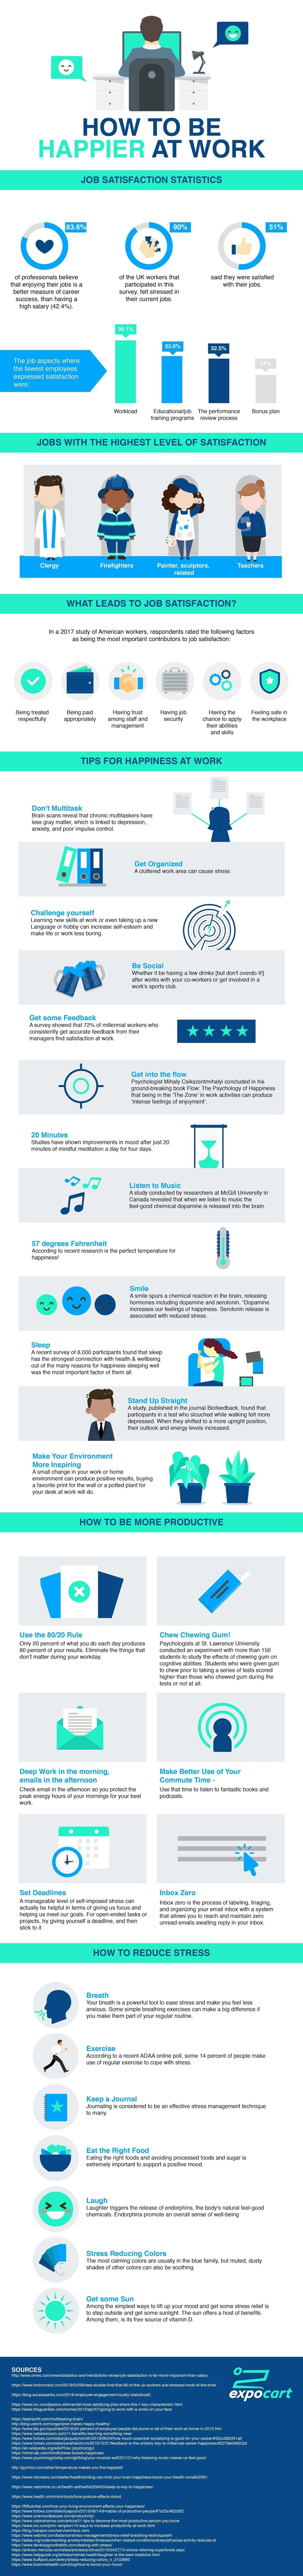 How to Be Happy at Work #infographic